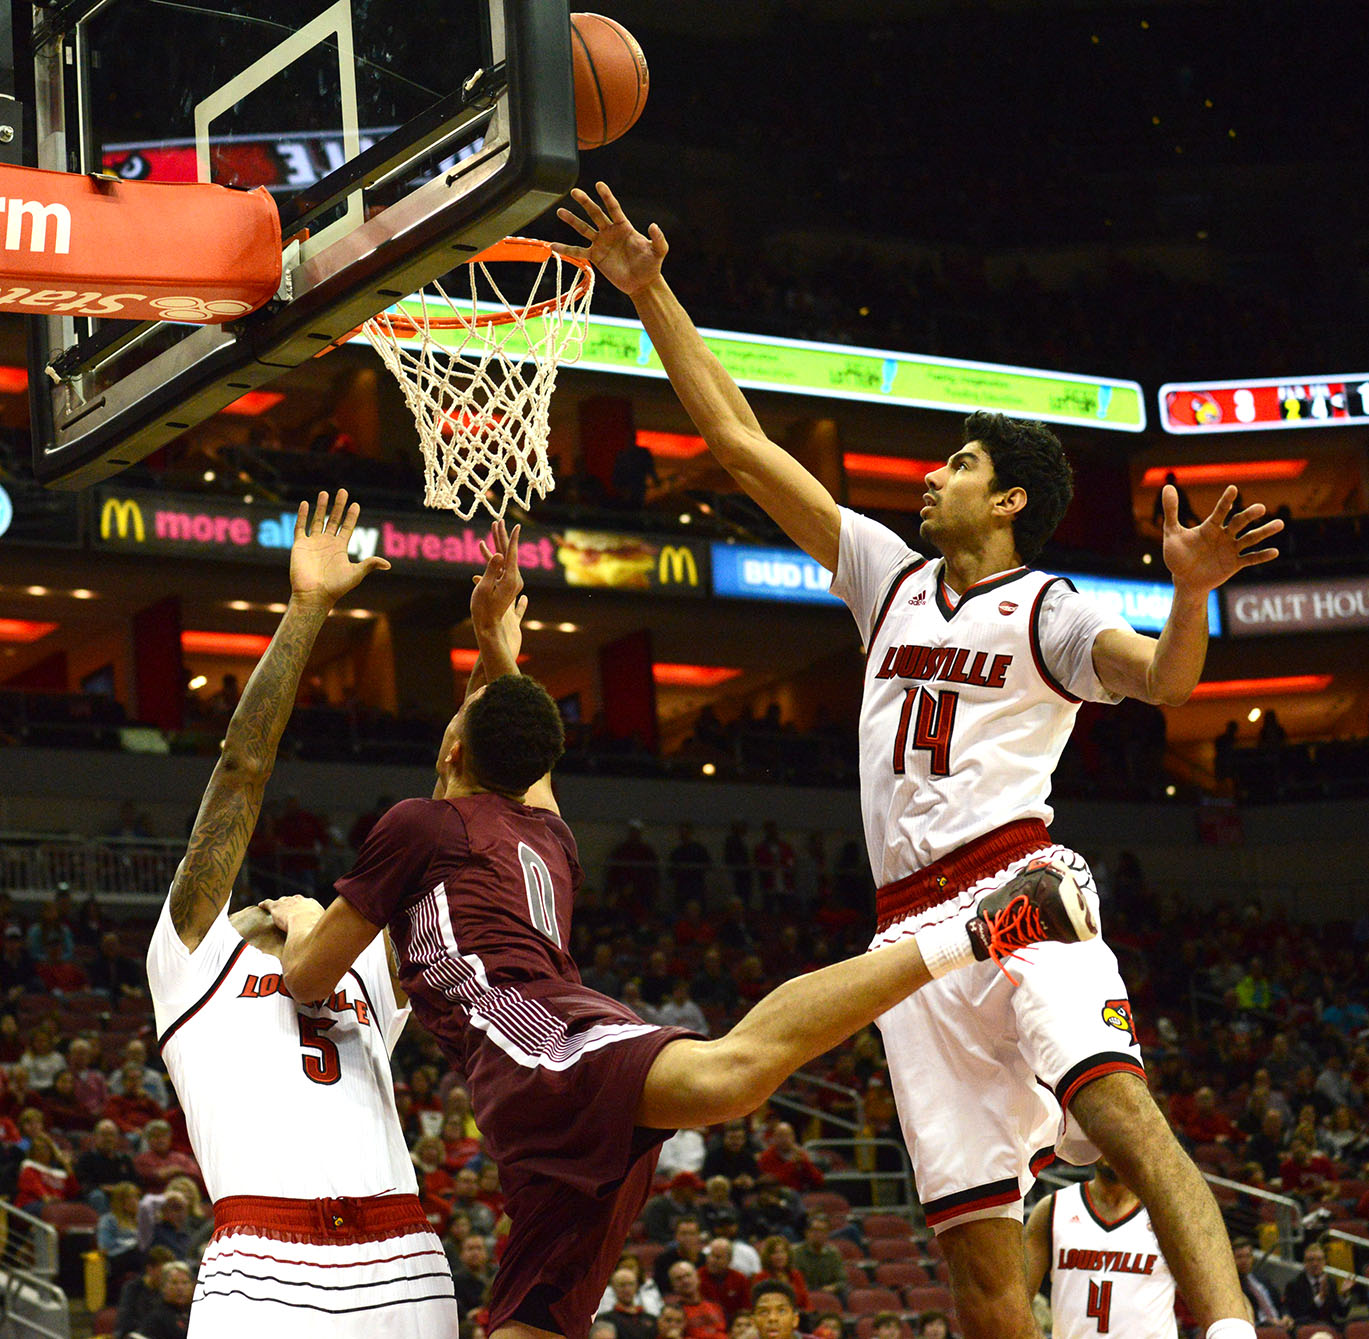 Senior forward Jonathan Wiley attempts to shoot a basket Tuesday, Nov. 21, 2017, during the Salukis' 84-42 loss against the University of Louisville at KFC Yum! Center in Louisville, Kentucky. (Athena Chrysanthou | @Chrysant1Athena)